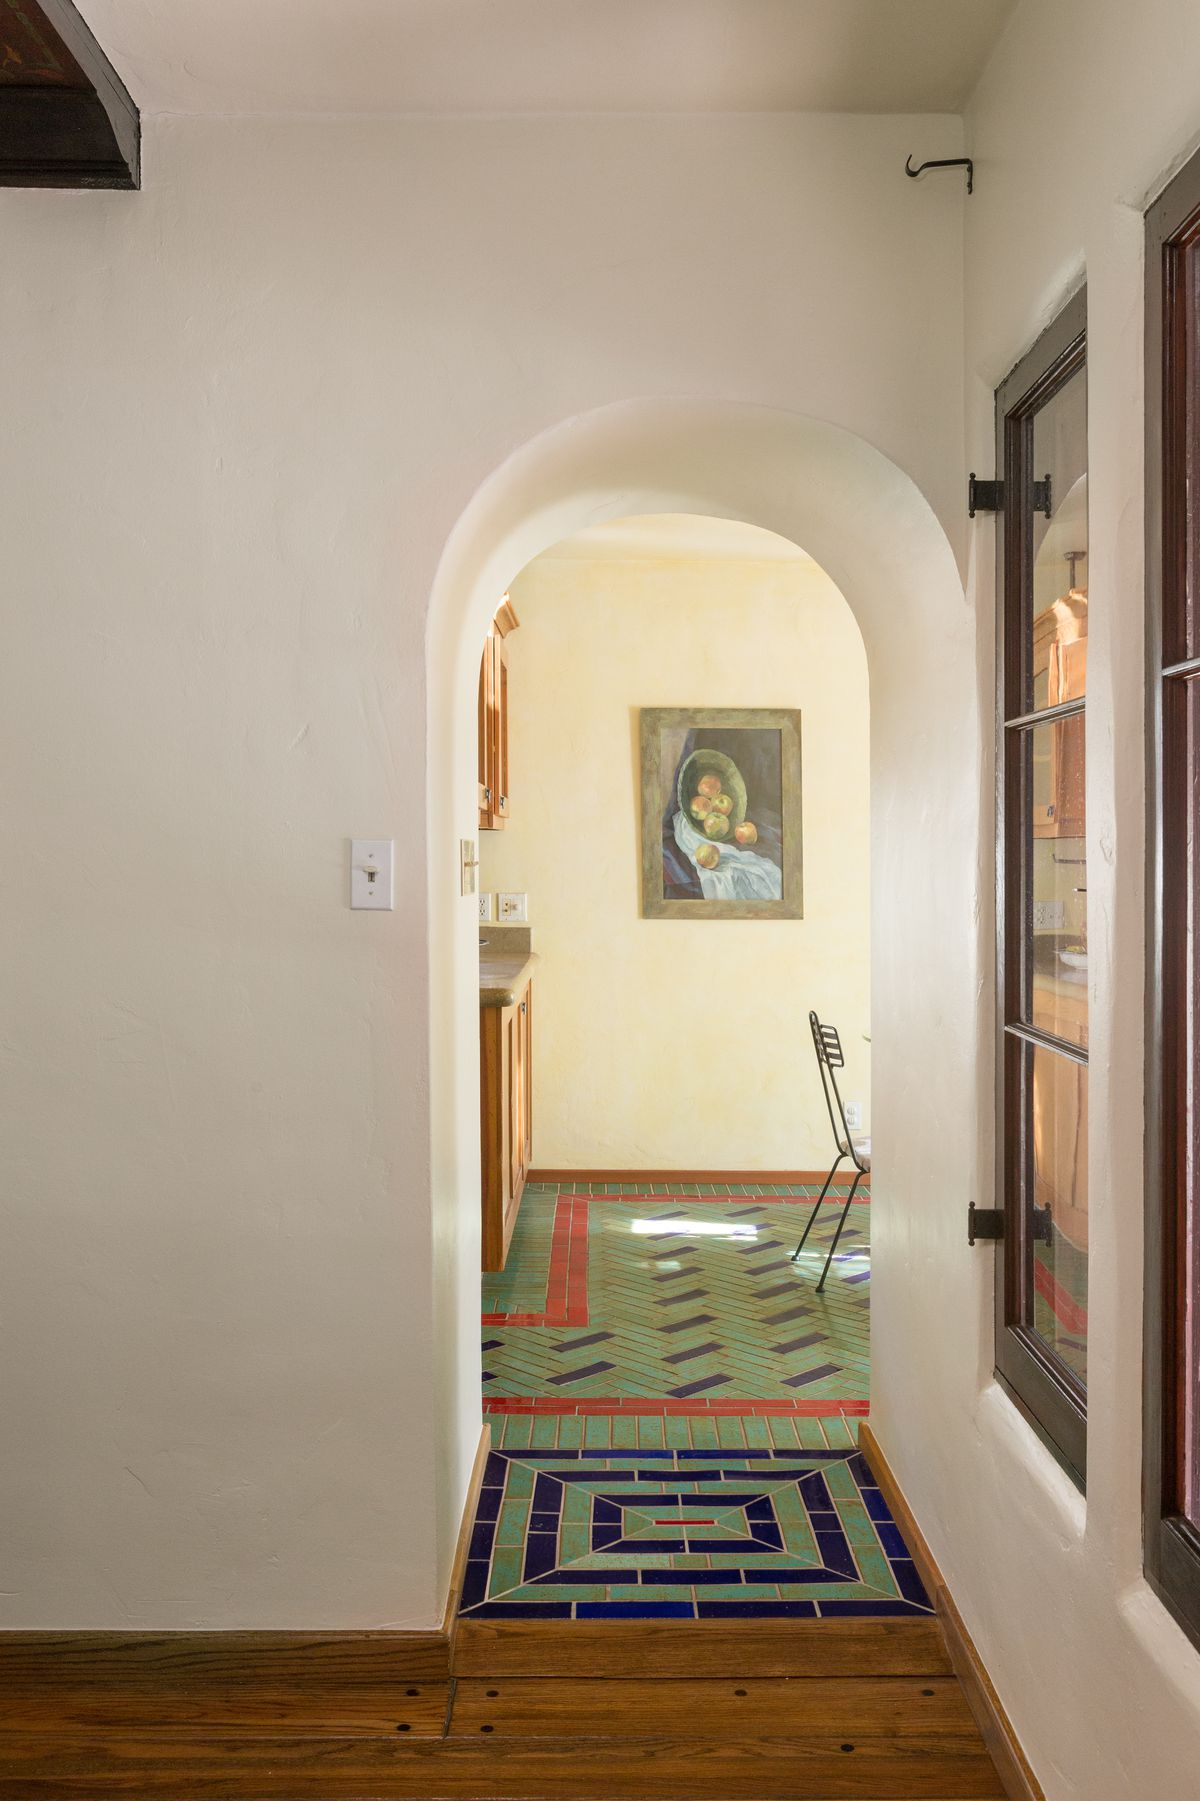 Spanish-style house oozes charm and color for $875K in Glendale ...